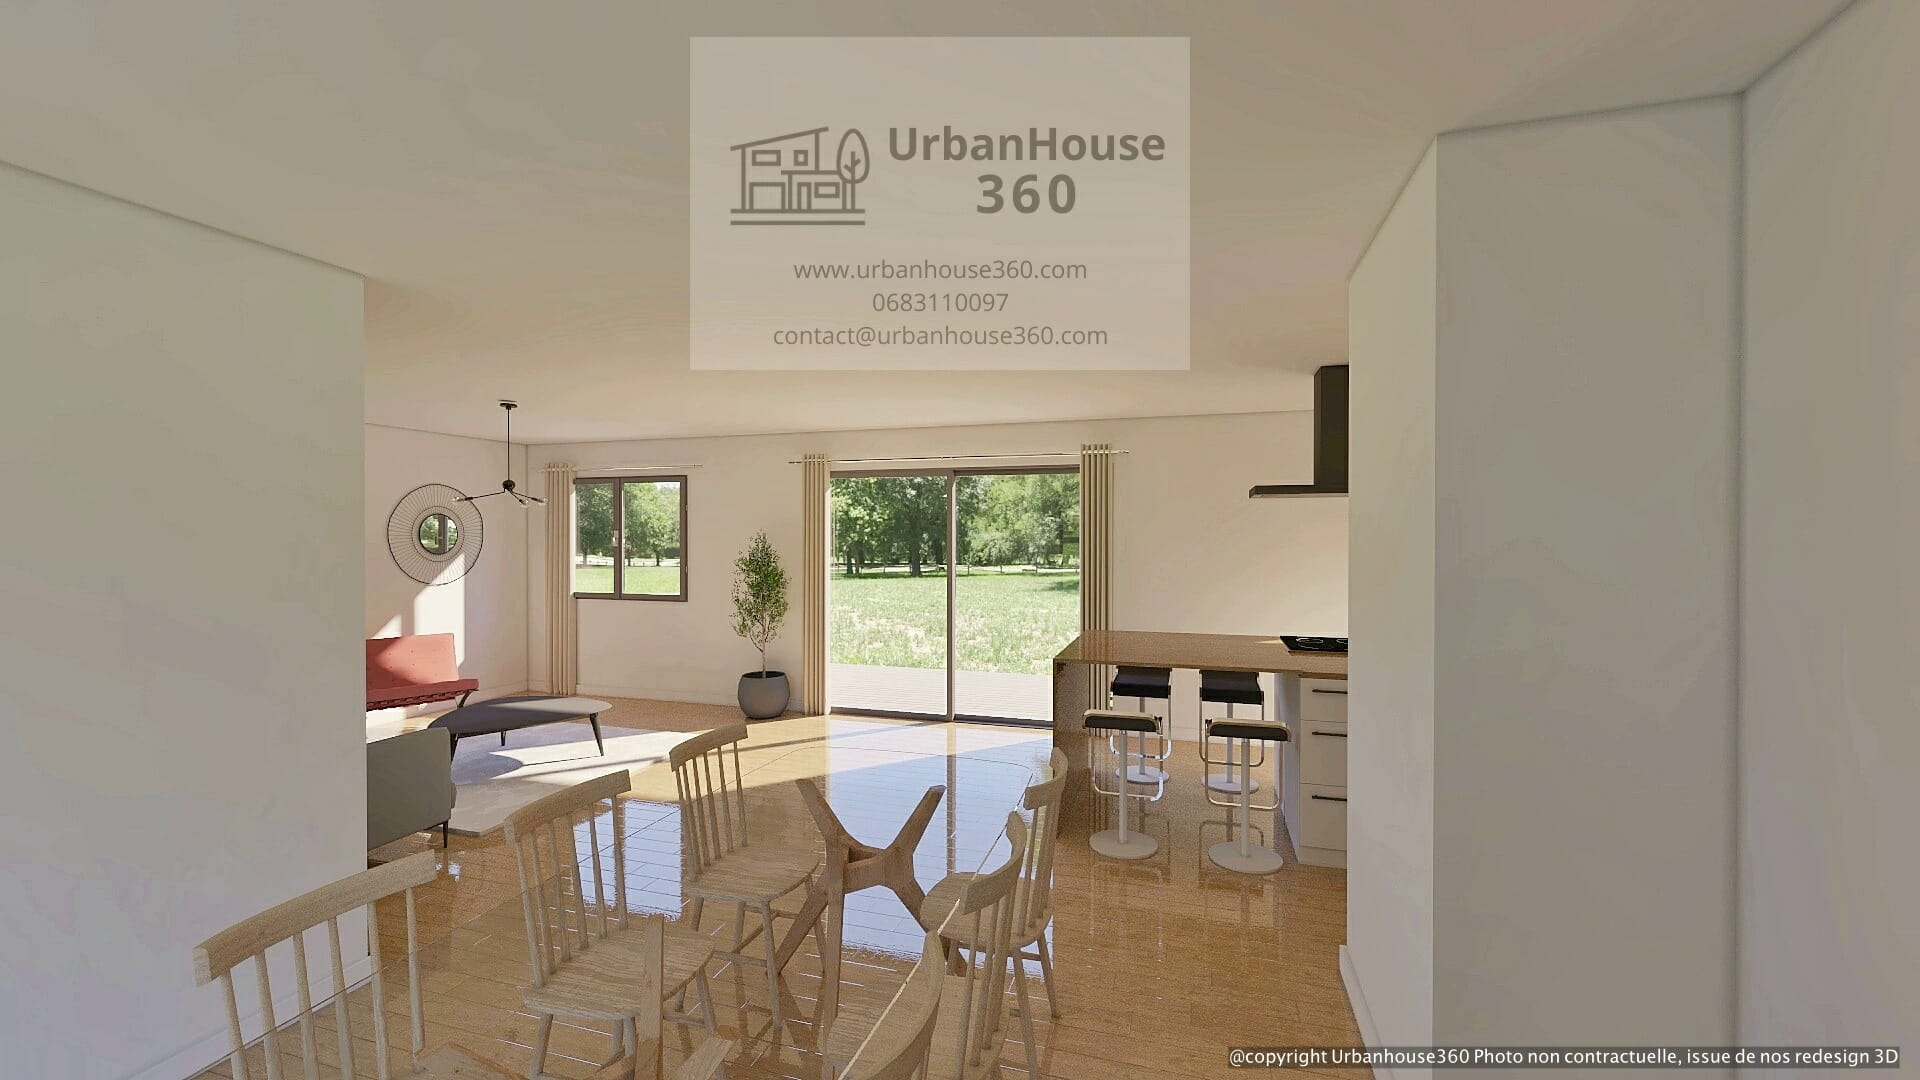 Urbanhouse360-Coulounieix-chamiers-Salon_5